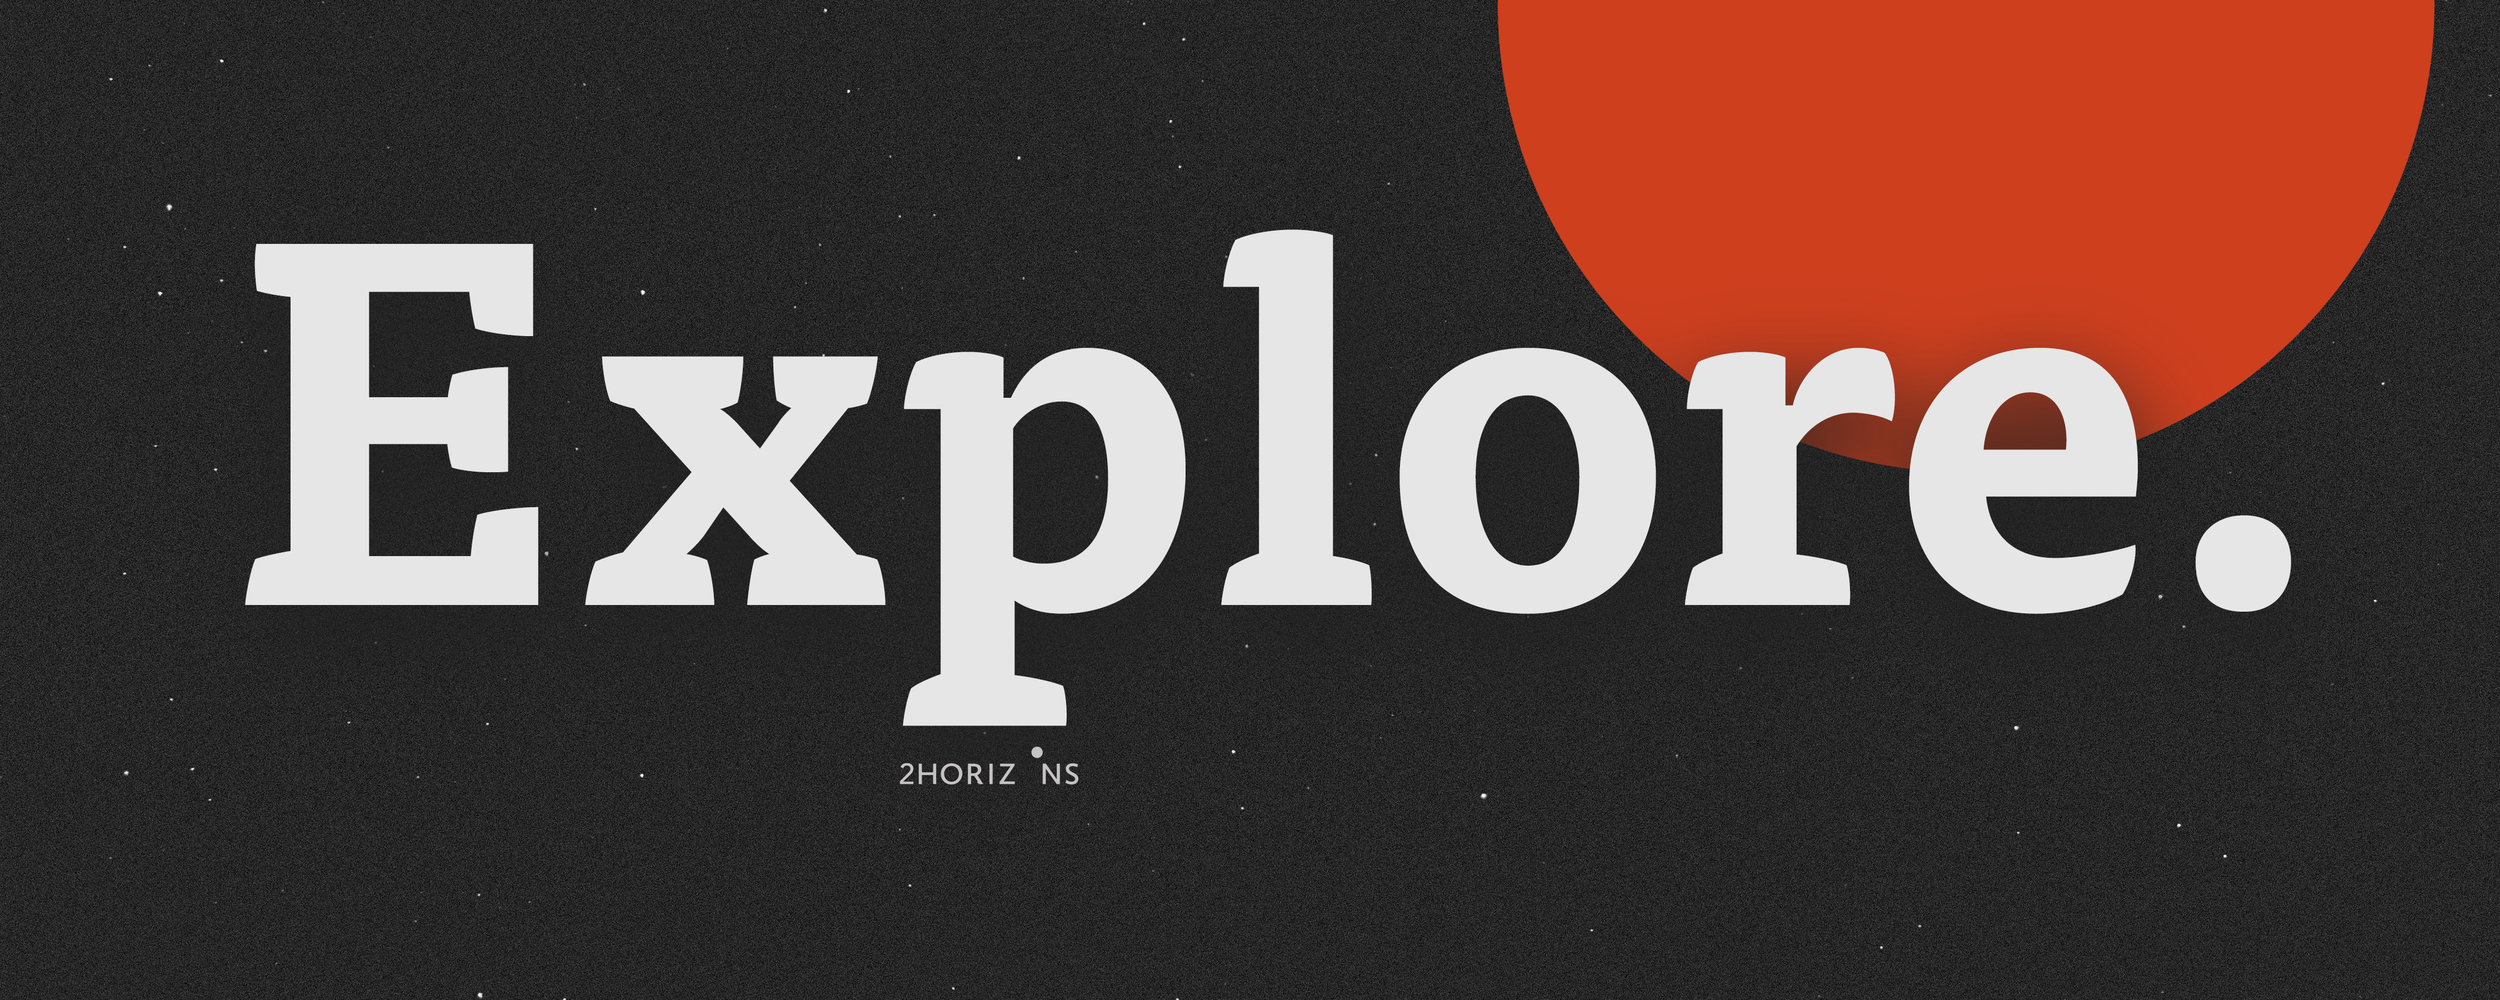 Thesis_behance typography banner.jpg